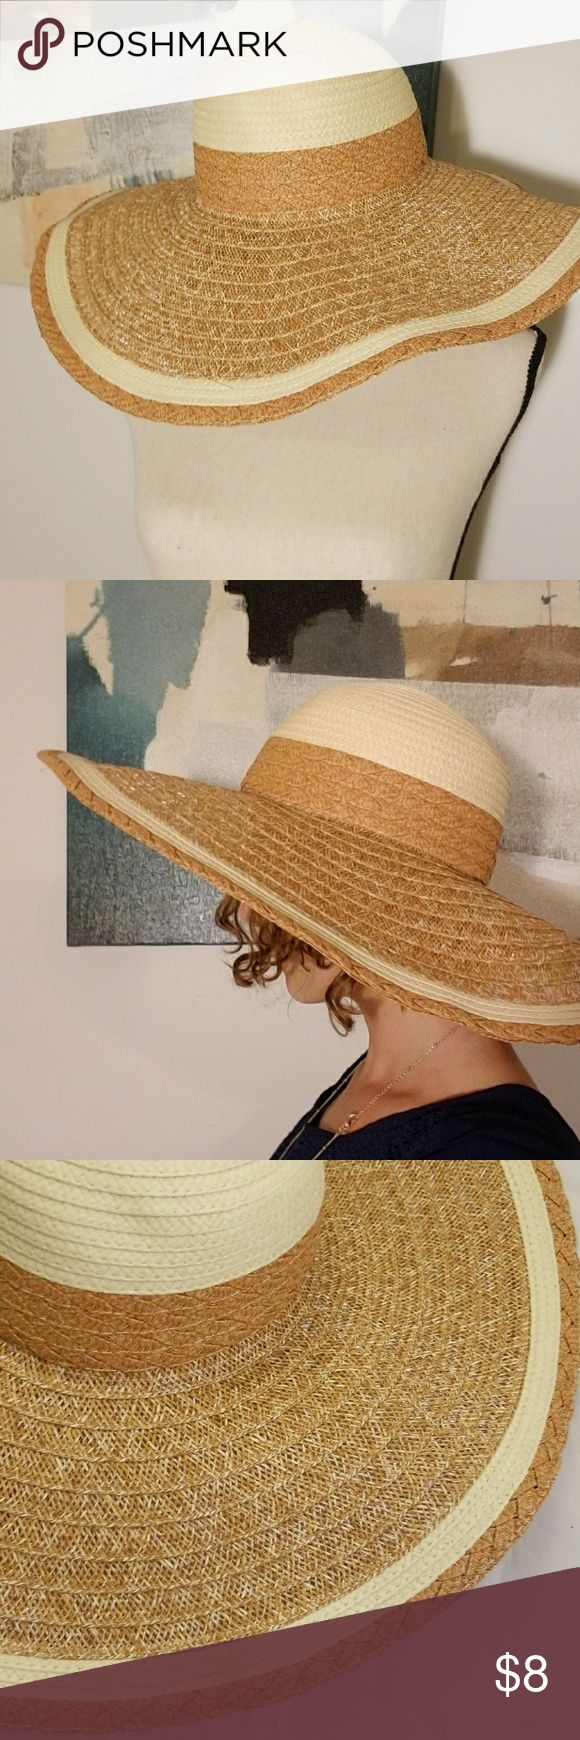 Natural Weave Wire Brim Floppy Hat SUMMER BLOWOUT!  This is a beautiful oversize floppy hat for women. The hat is a basketweave hat in a lovely natural color with braided trim detail. There is flexible wire in the brim so the hat can be shaped as you want to for best sun protection. Product Dimensions: 19 x 19 x 4.5 inches. PrincipleProject Accessories Hats